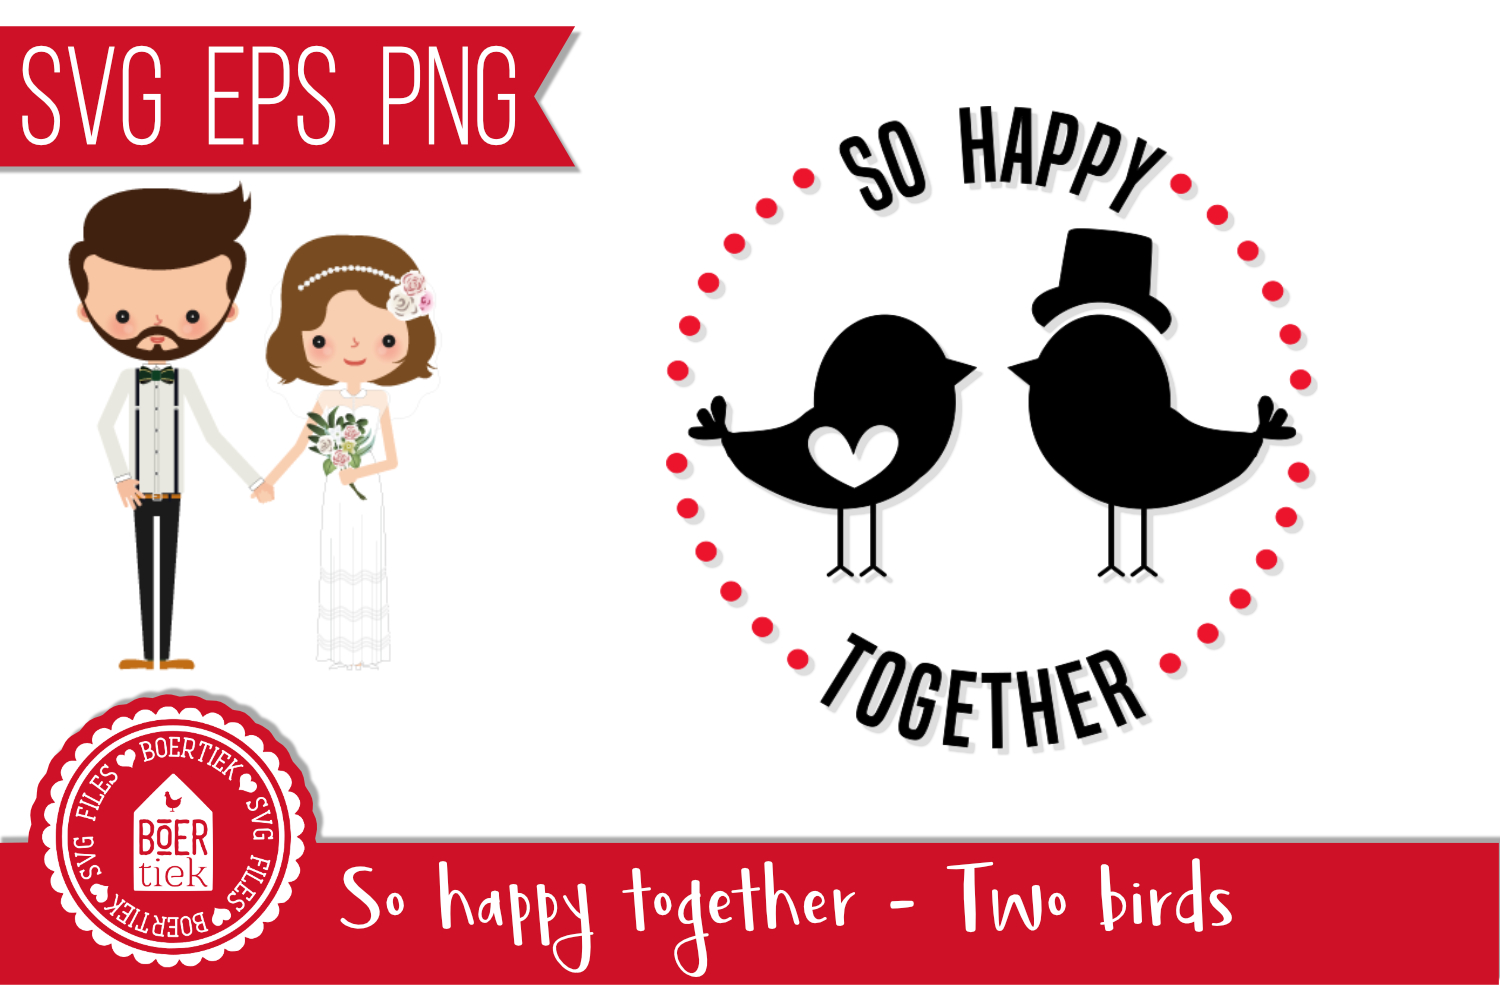 Download Free So Happy Together Wedding Svg File Graphic By Boertiek Creative Fabrica for Cricut Explore, Silhouette and other cutting machines.